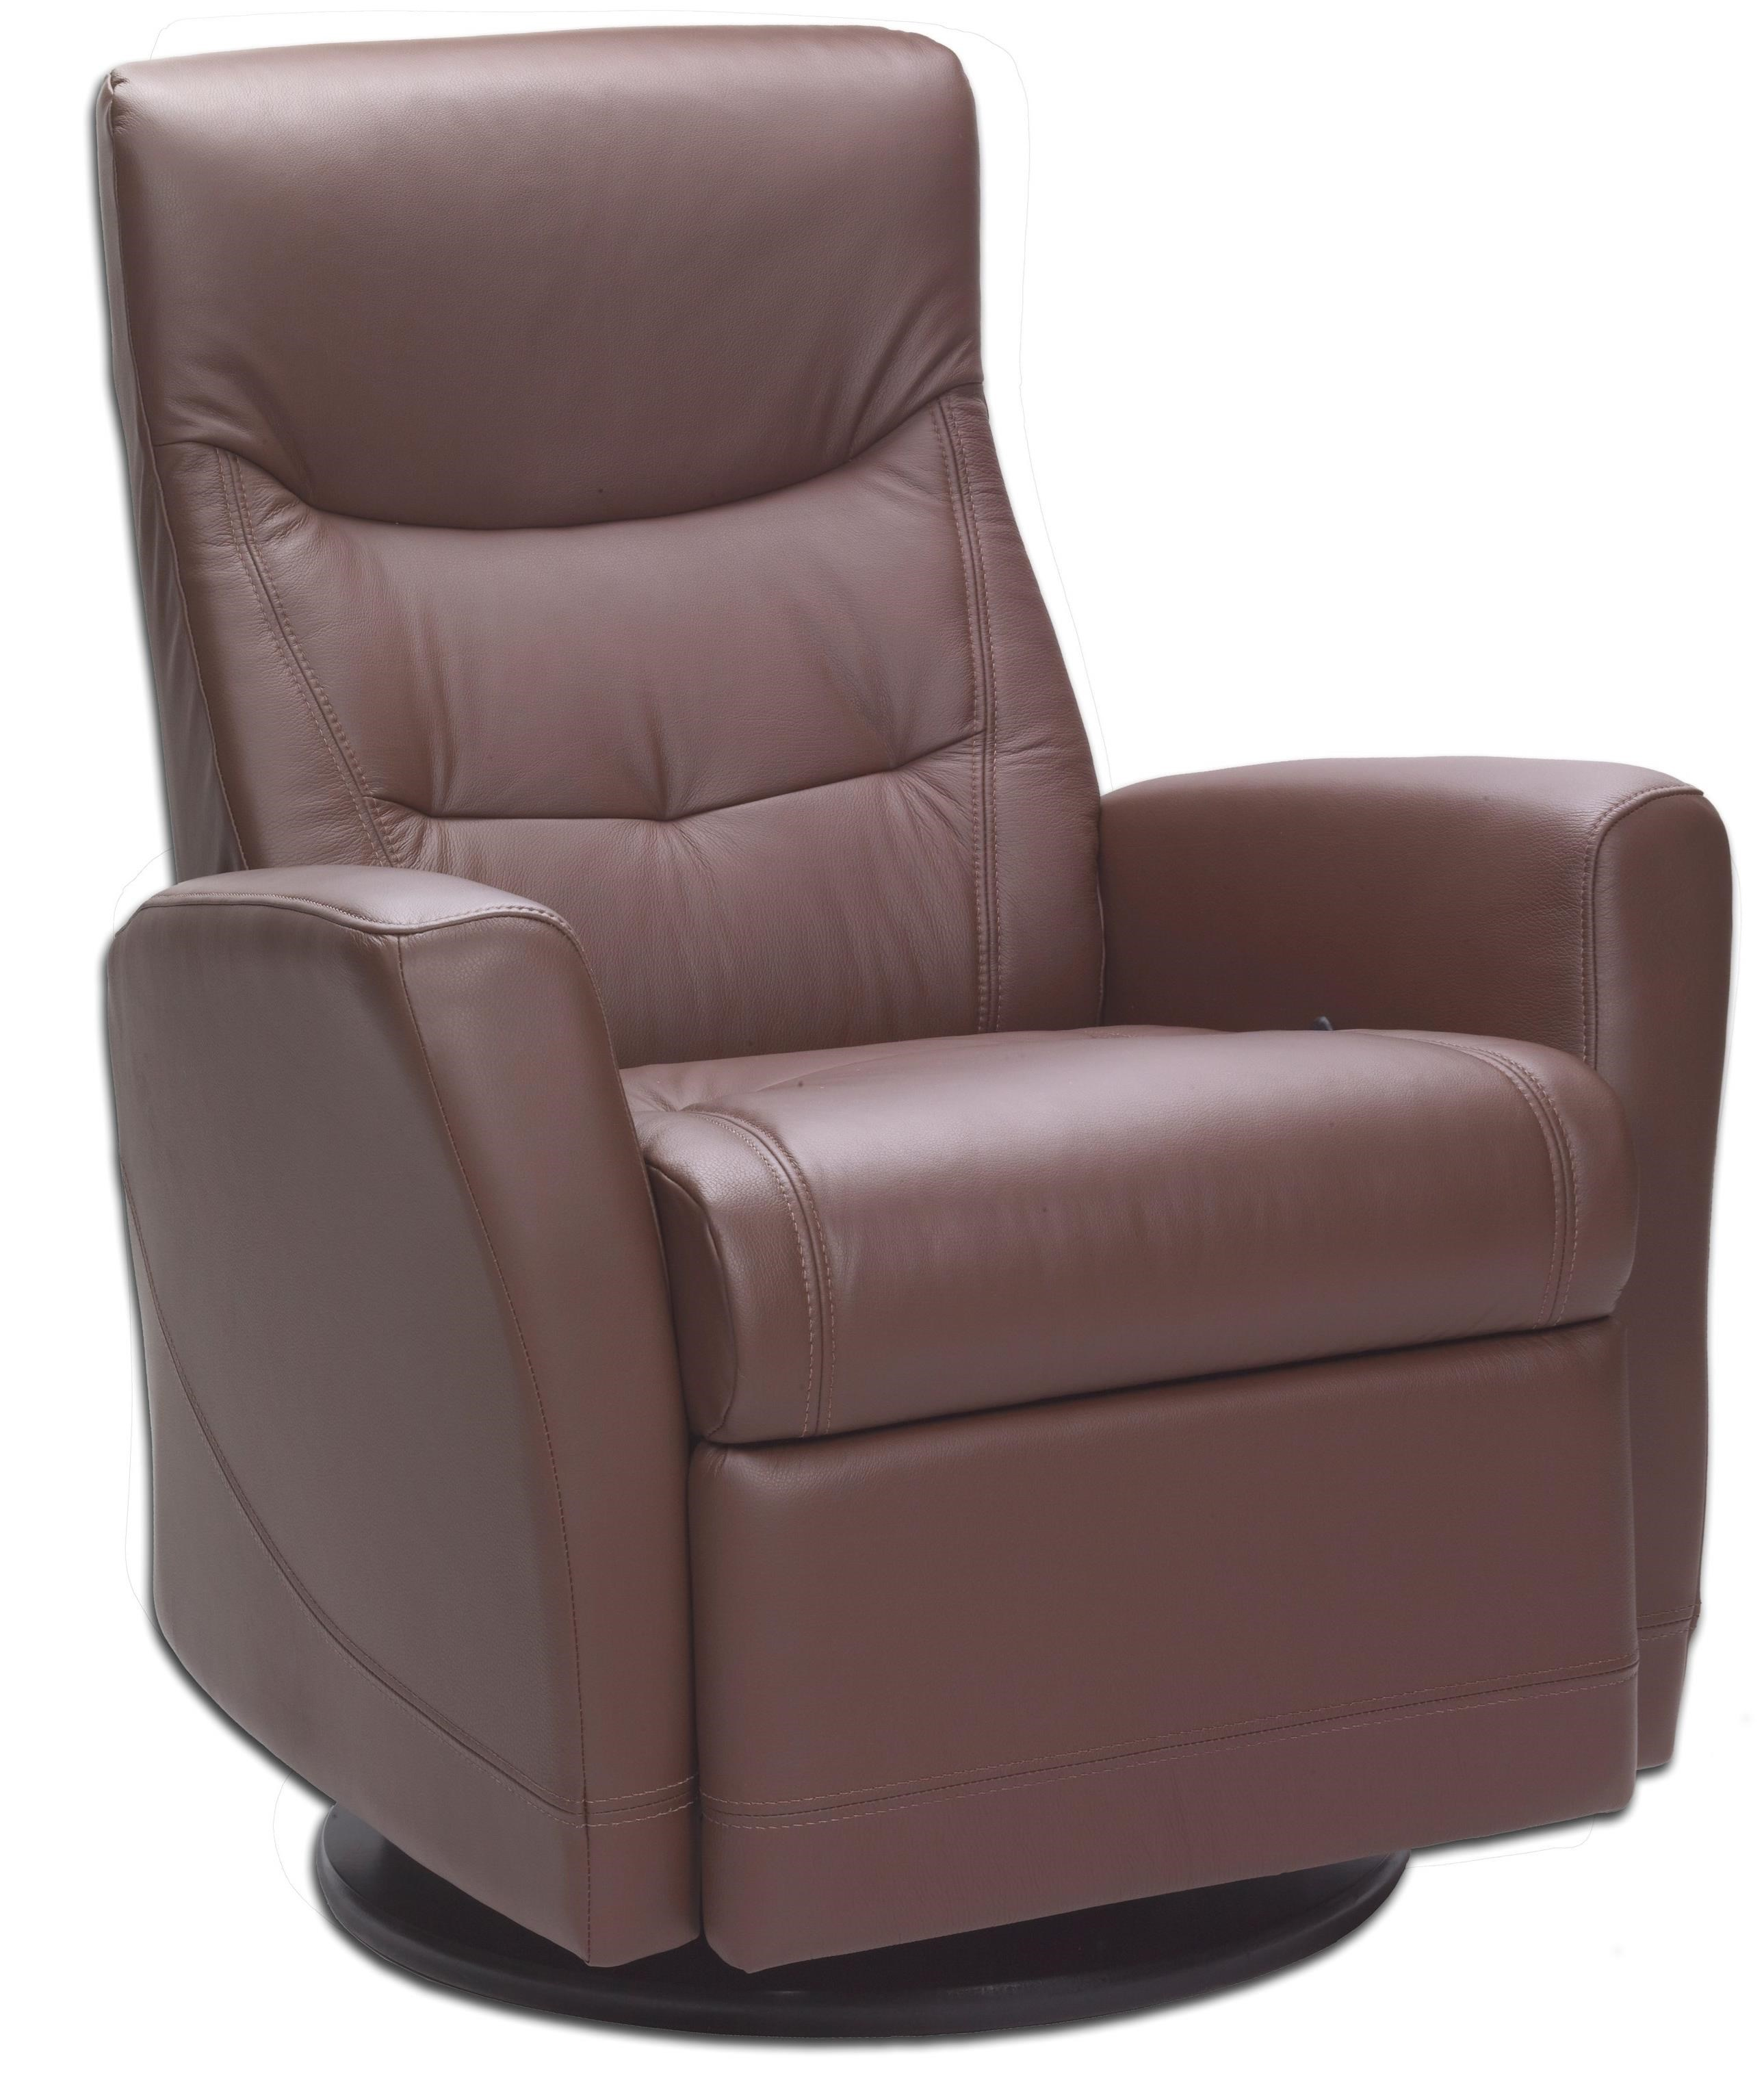 Oslo  Large Relaxer Recliner by Fjords by Hjellegjerde at Rooms and Rest